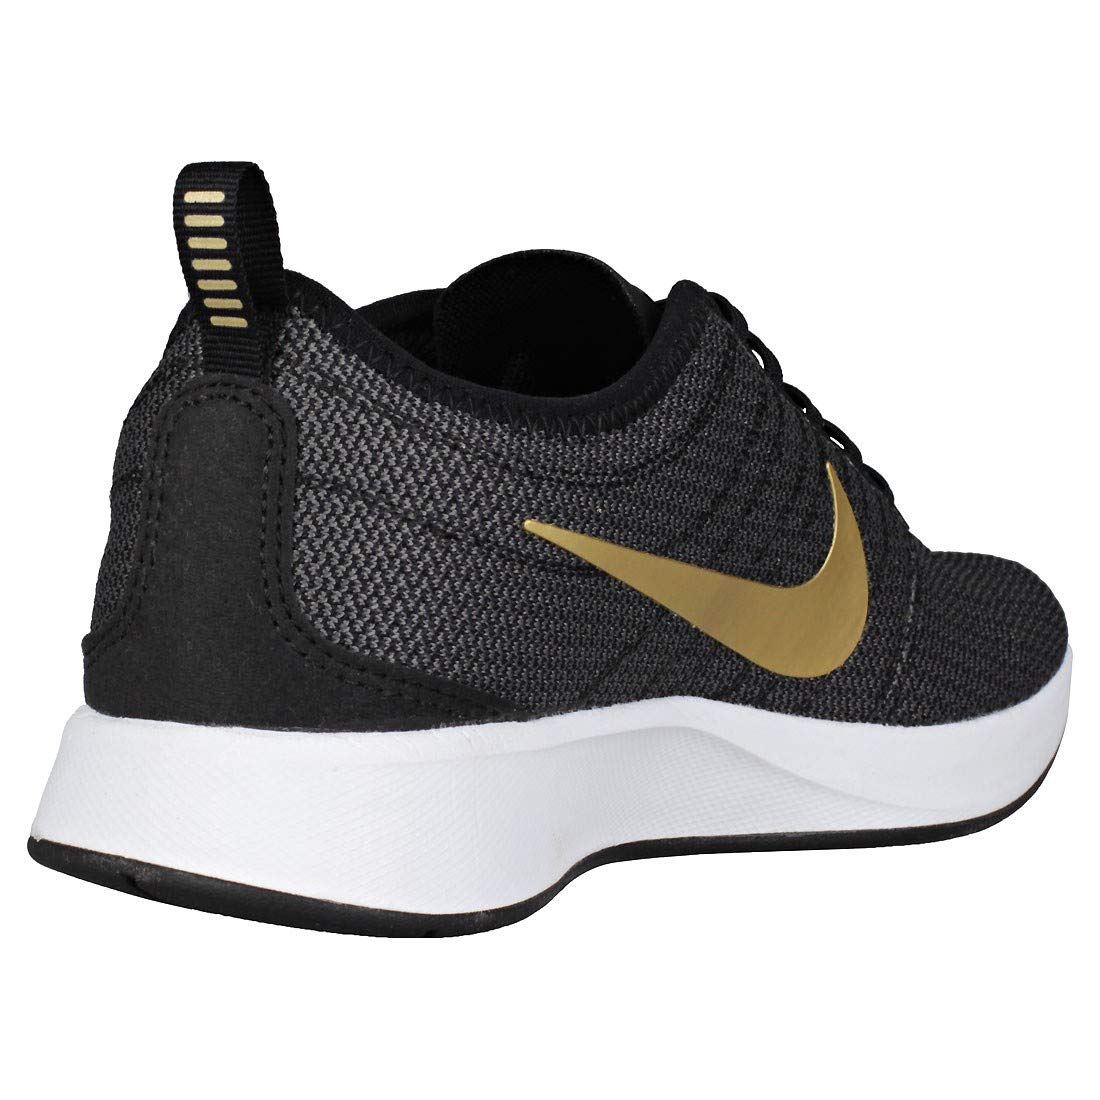 sale retailer bae77 dac83 Nike Women s W Dualtone Racer Se Running Shoes Black  Amazon.co.uk  Shoes    Bags